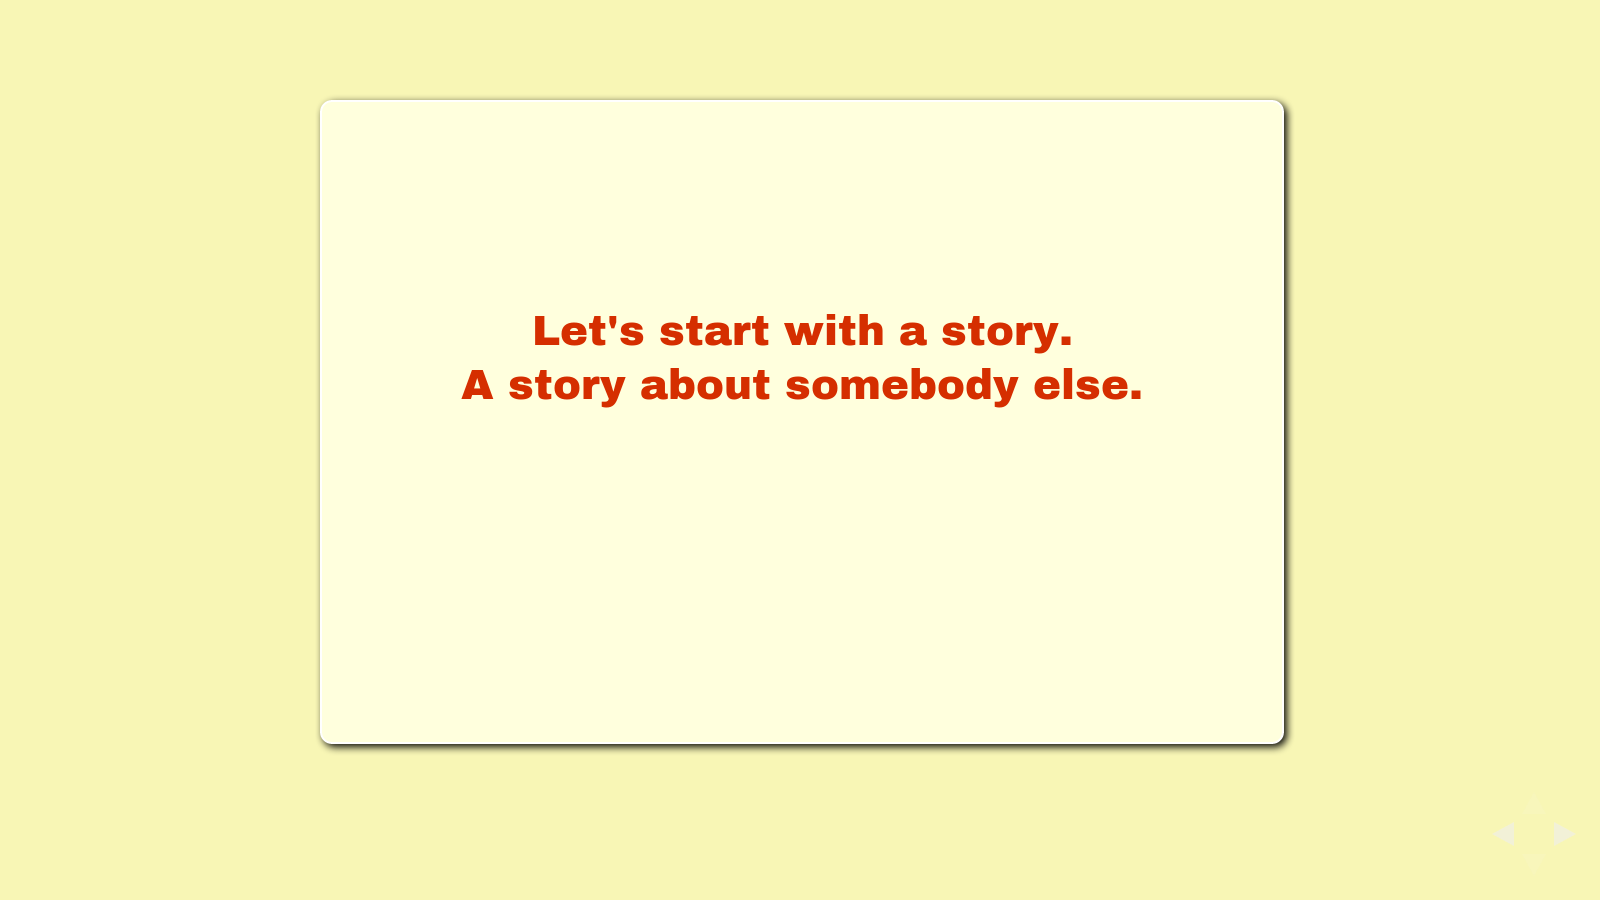 Slide: Let's start with a story